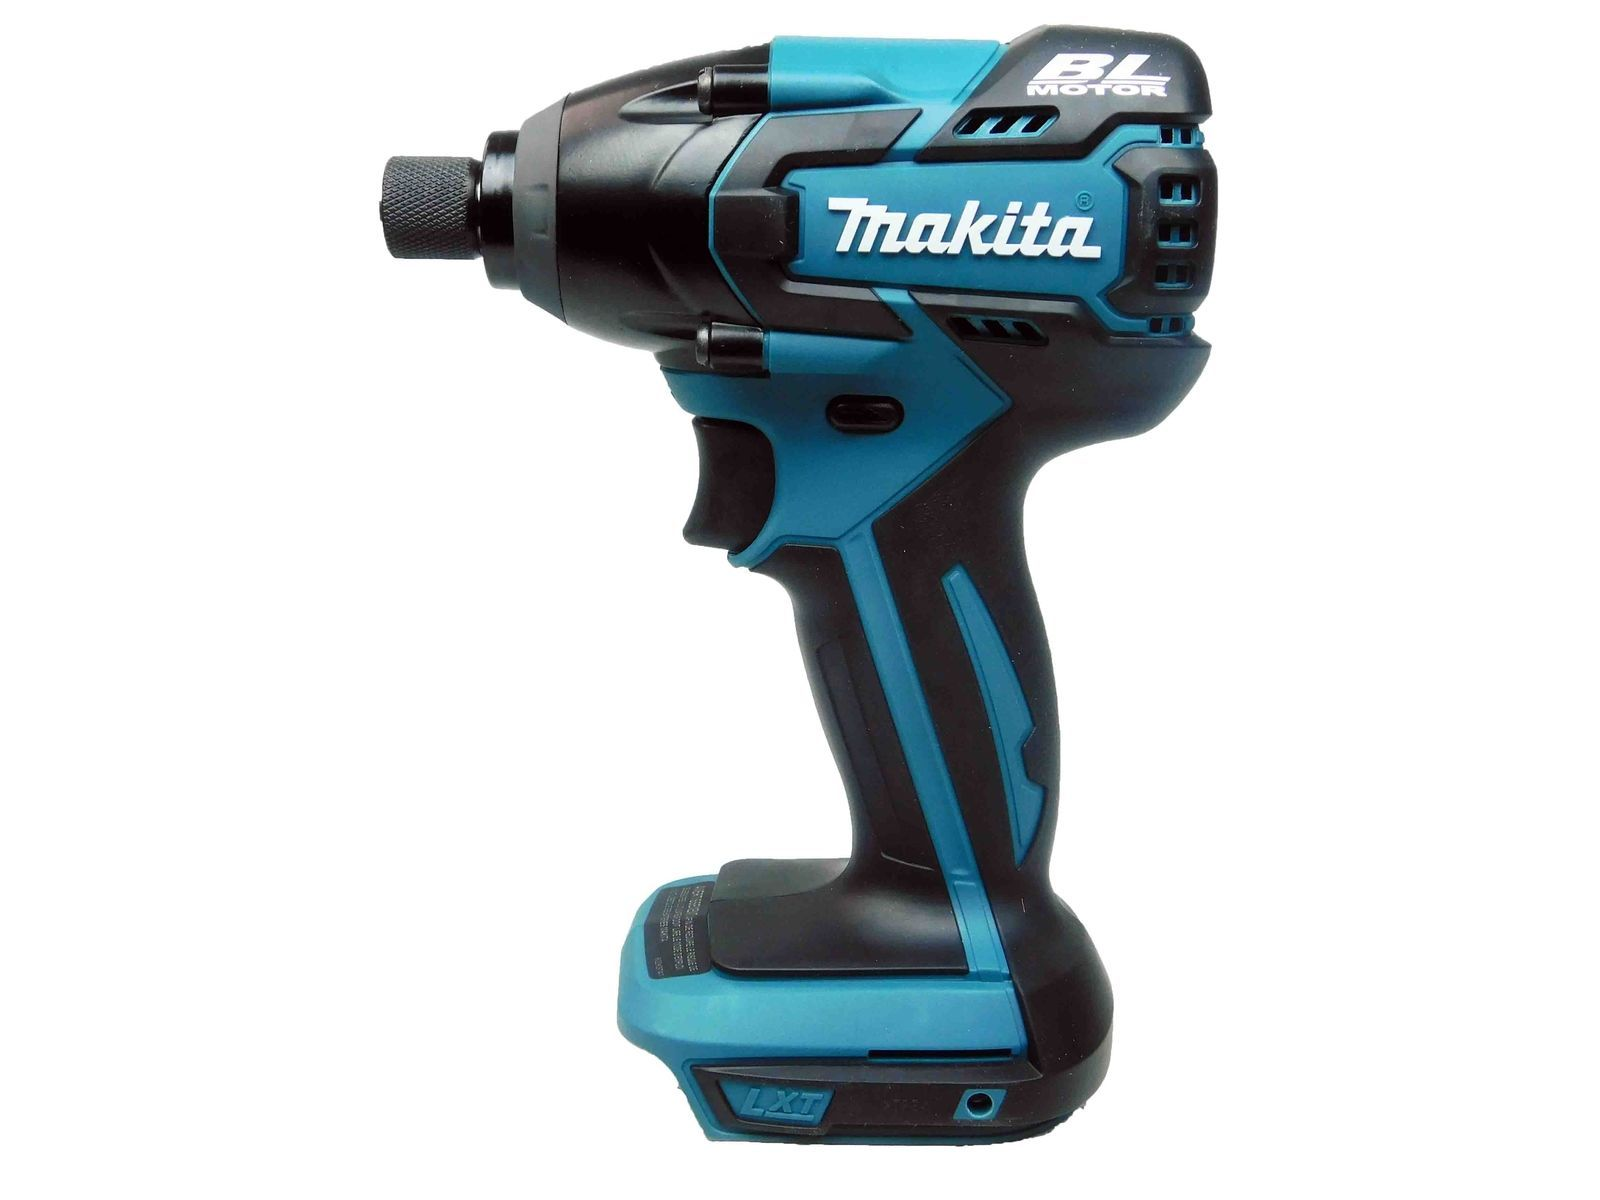 Makita-18V-XDT08-LXT-Lithium-Ion-Brushless-1-4-in.-Cordless-Impact-Driver-image-2